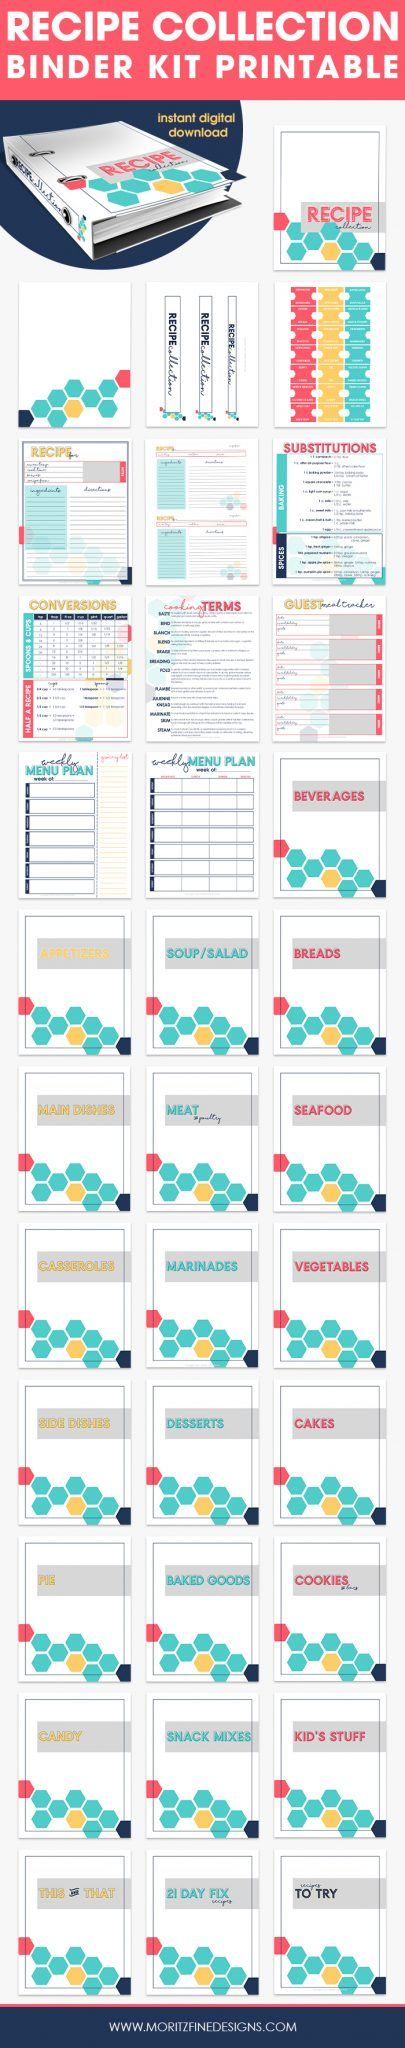 Blue apron recipe binder